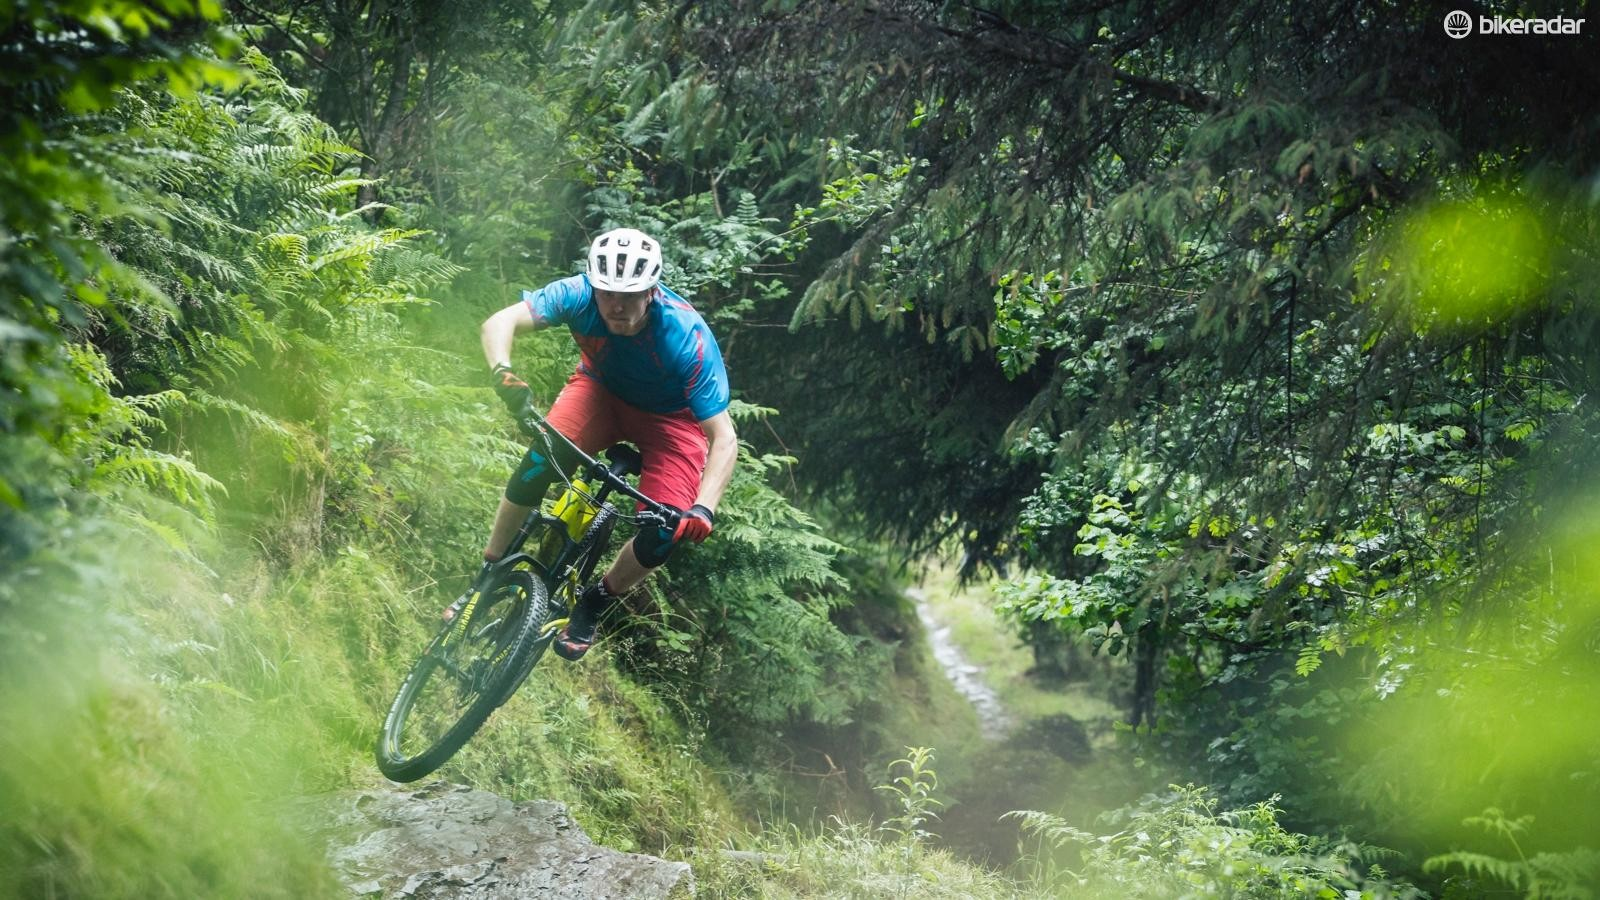 The fast-rolling tyres, low weight and efficient feel were a blast at Afan, though I'd like a higher bar for steeper terrain